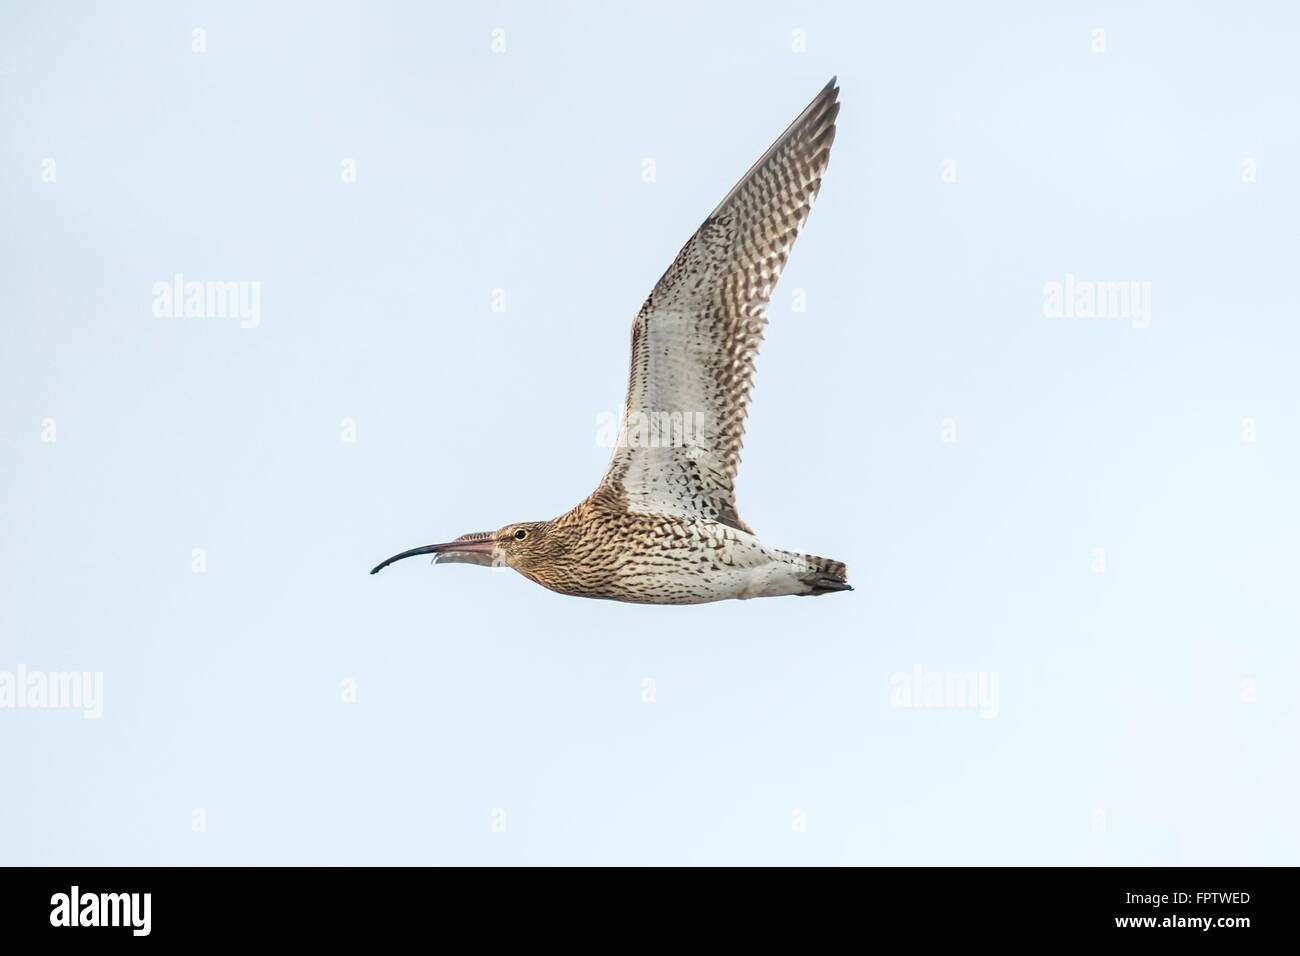 Eurasian curlew numenius arquata in flight. Blue sky on the background. Stock Photo